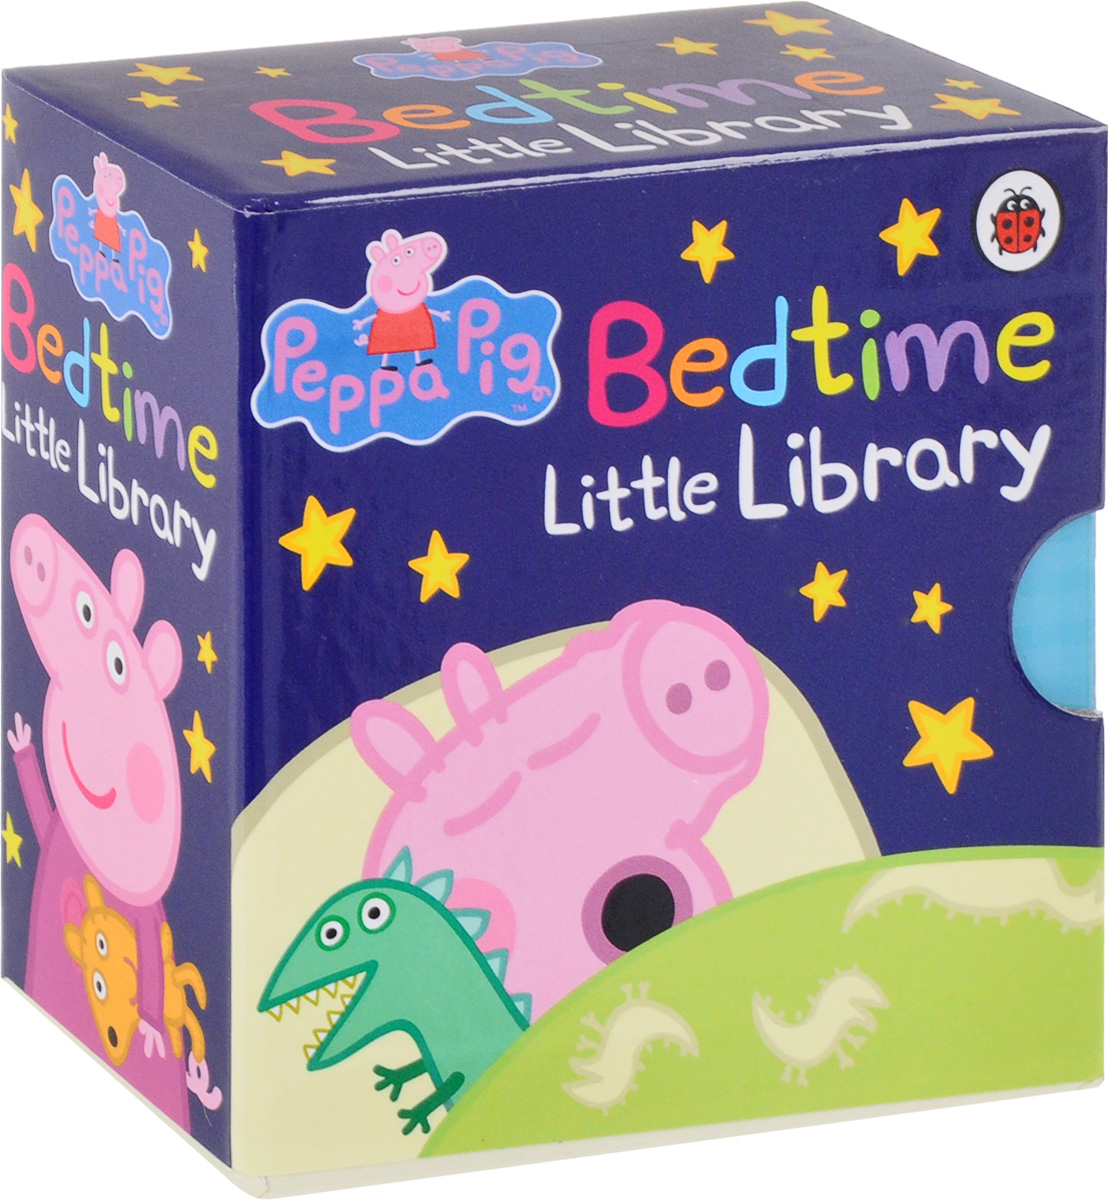 Peppa Pig: Bedtime Little Library little library 6 books